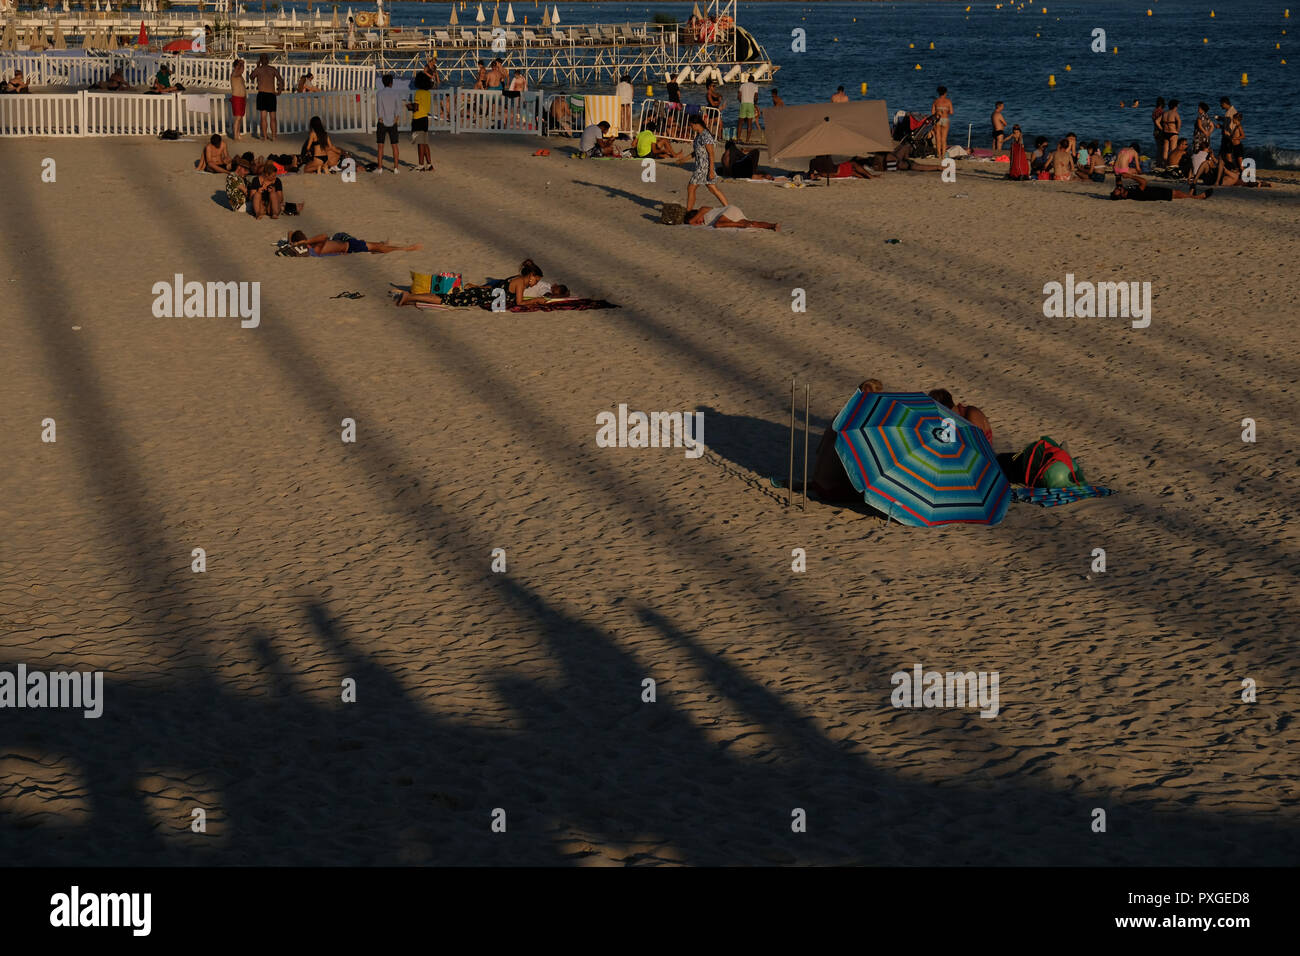 The Cannes beach, France - Stock Image